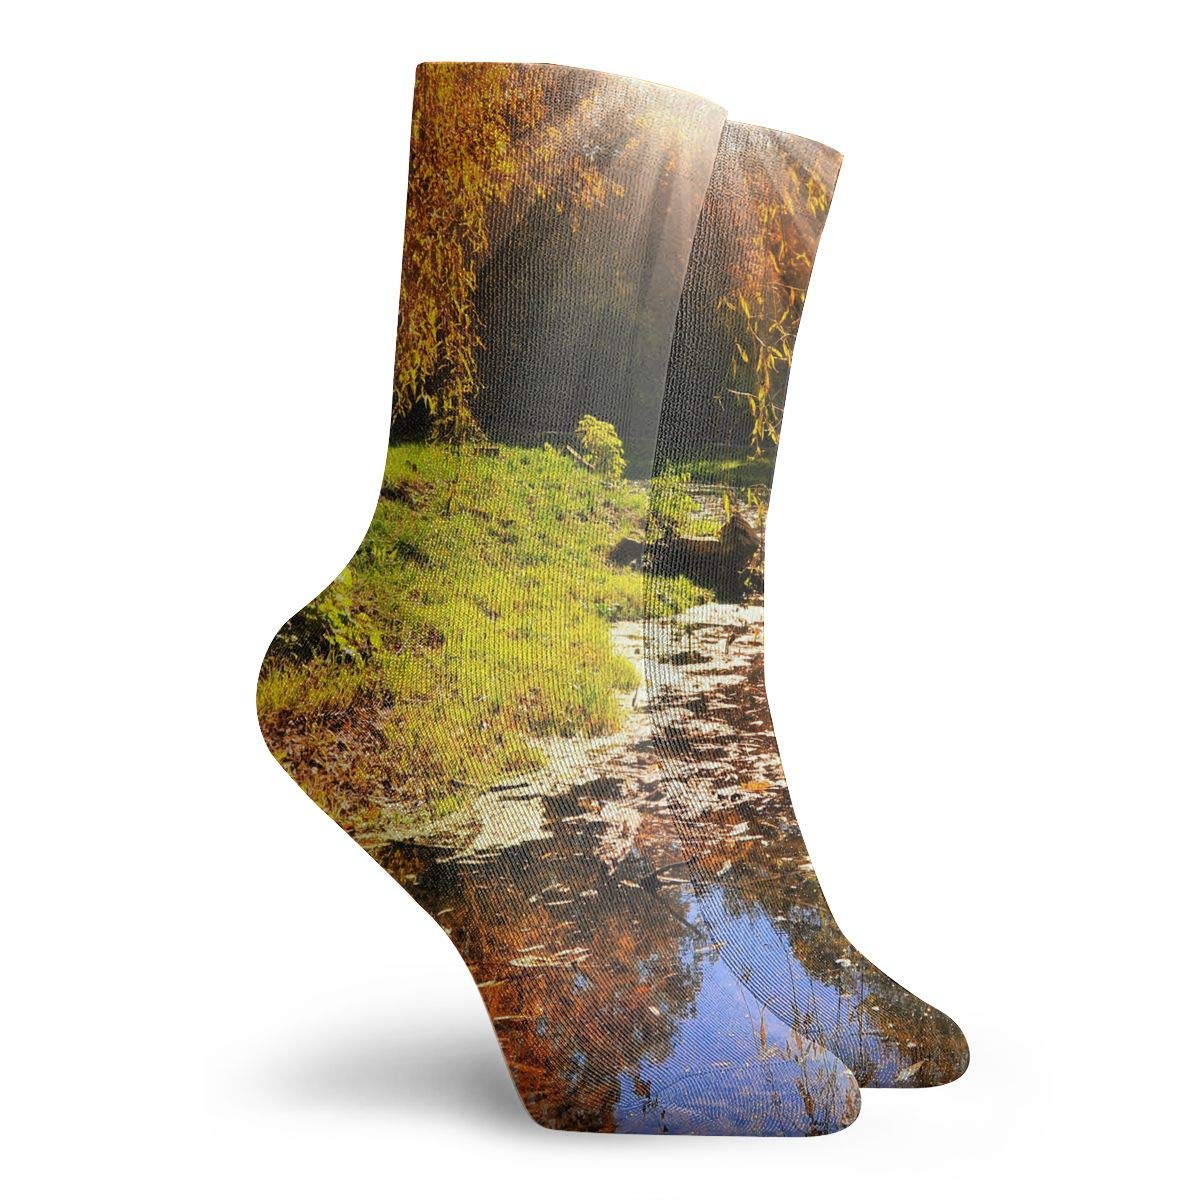 WEEDKEYCAT Nature Sun Autumn Tree Landscape Adult Short Socks Cotton Gym Socks for Mens Womens Yoga Hiking Cycling Running Soccer Sports